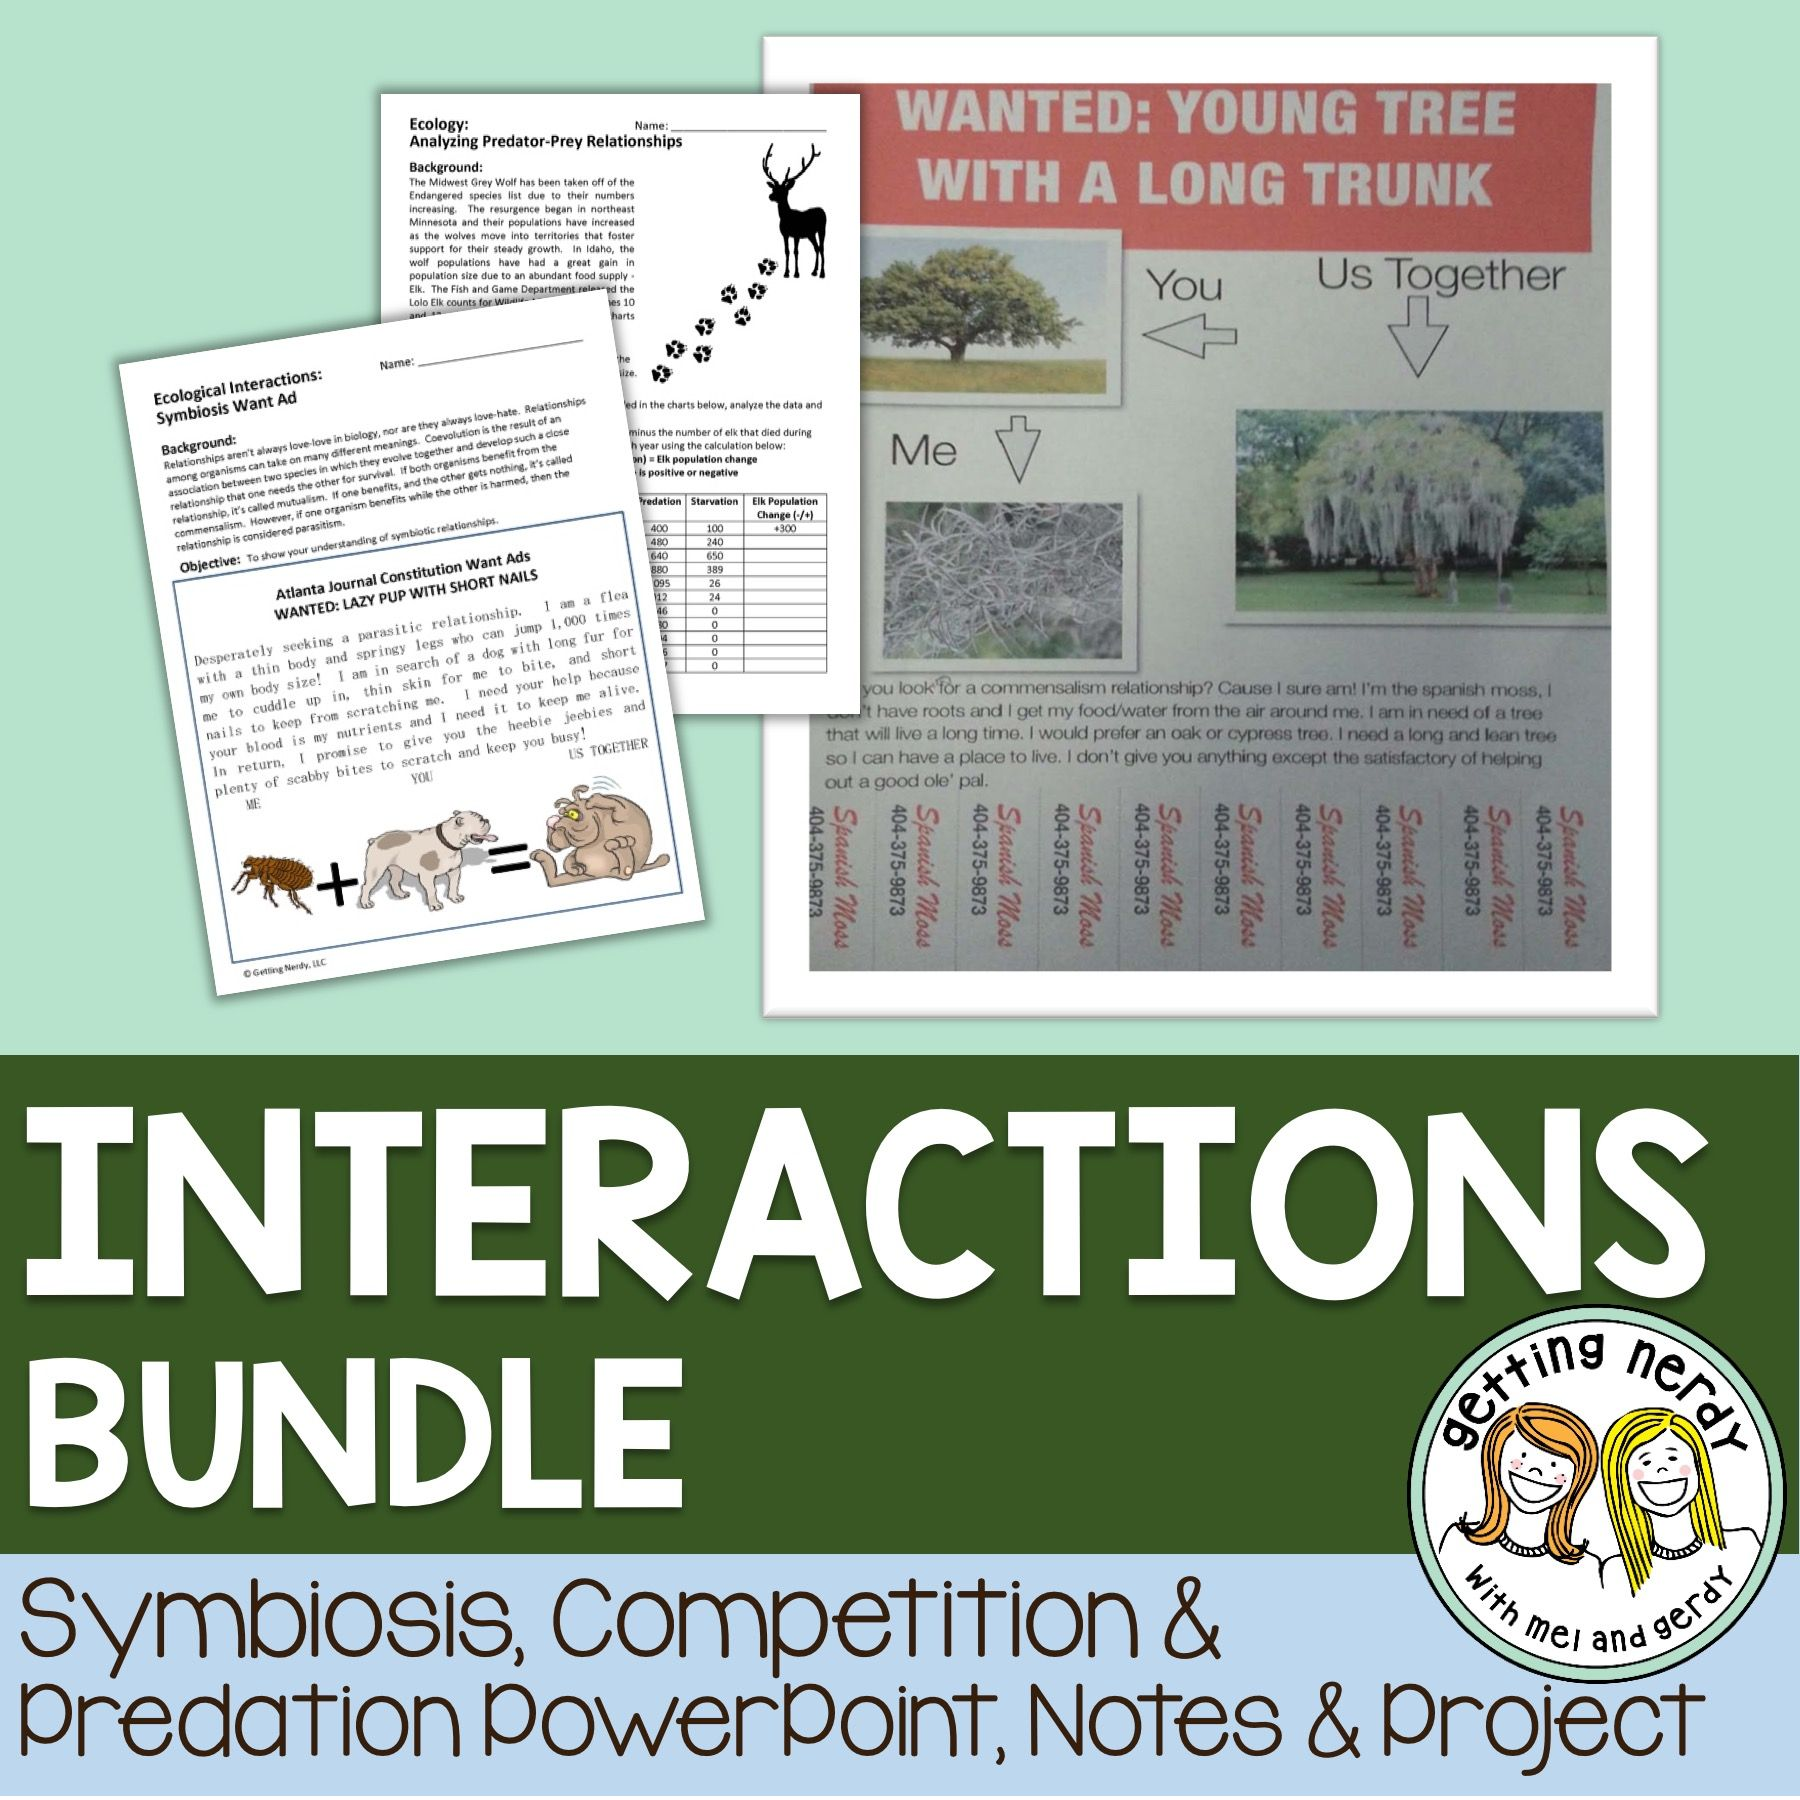 Symbiosis Competition And Predation